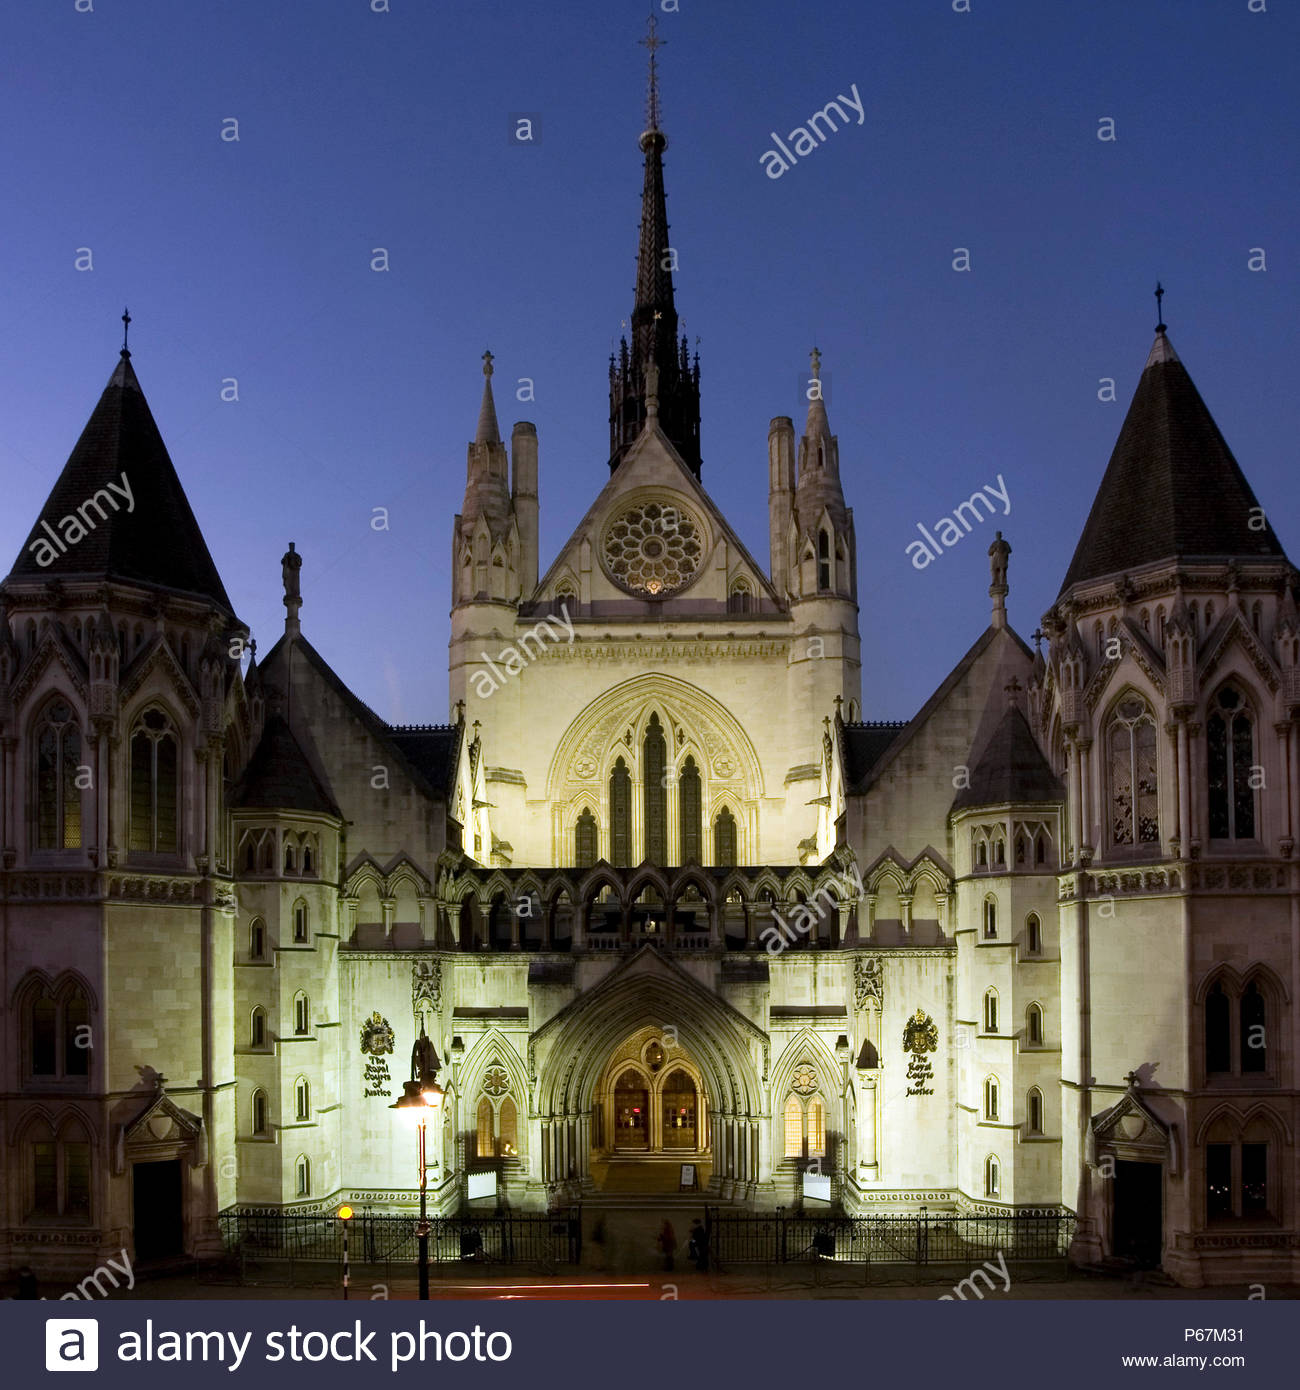 Royal Courts of Justice, George Edmund Street, London, UK Stock Photo